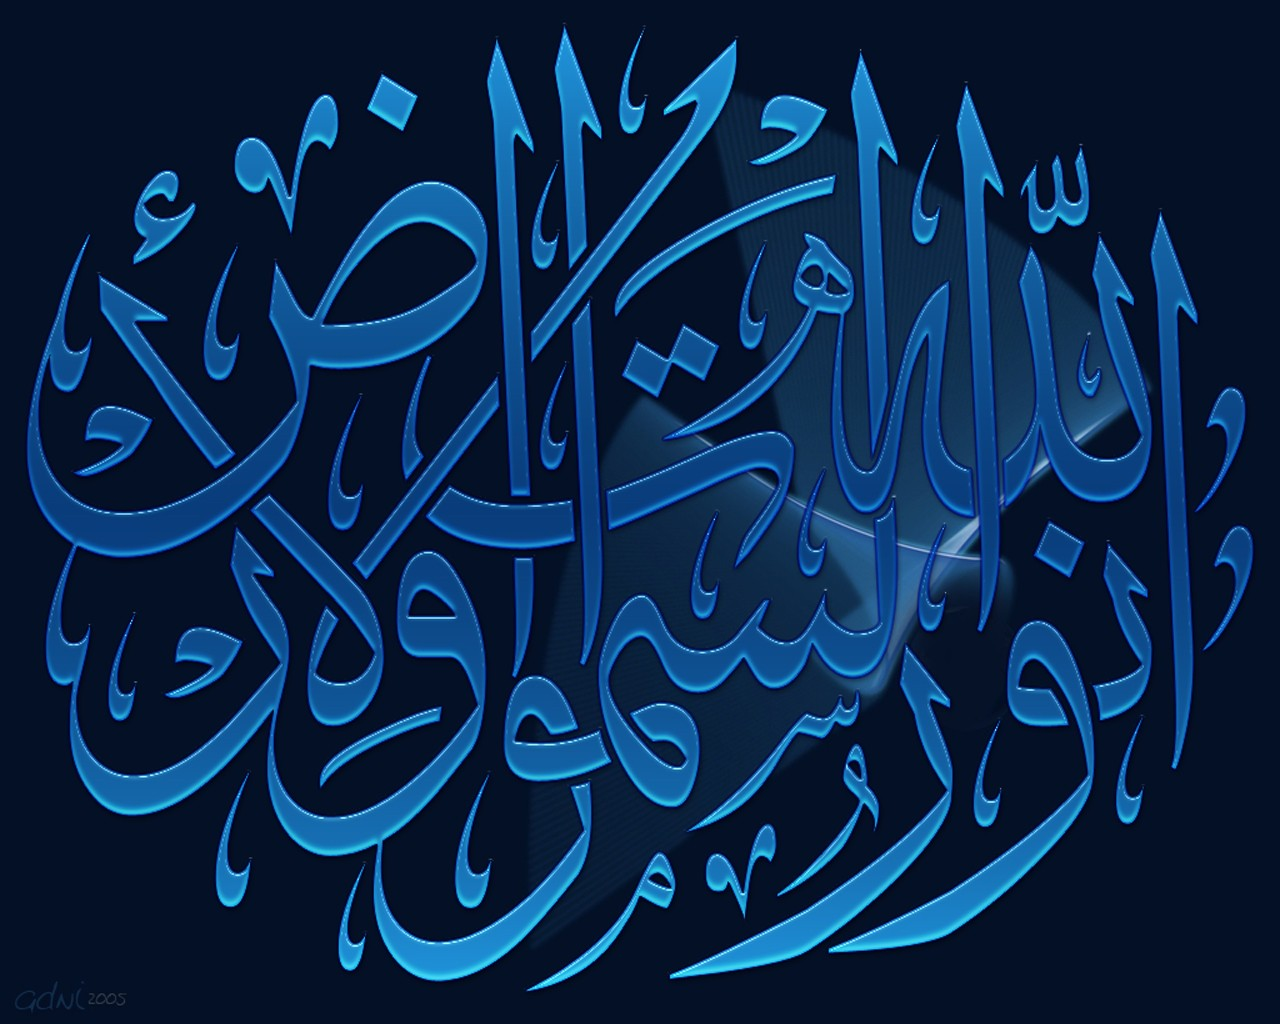 Islamic calligraphy wallpapers yasir imran mirza Allah calligraphy wallpaper